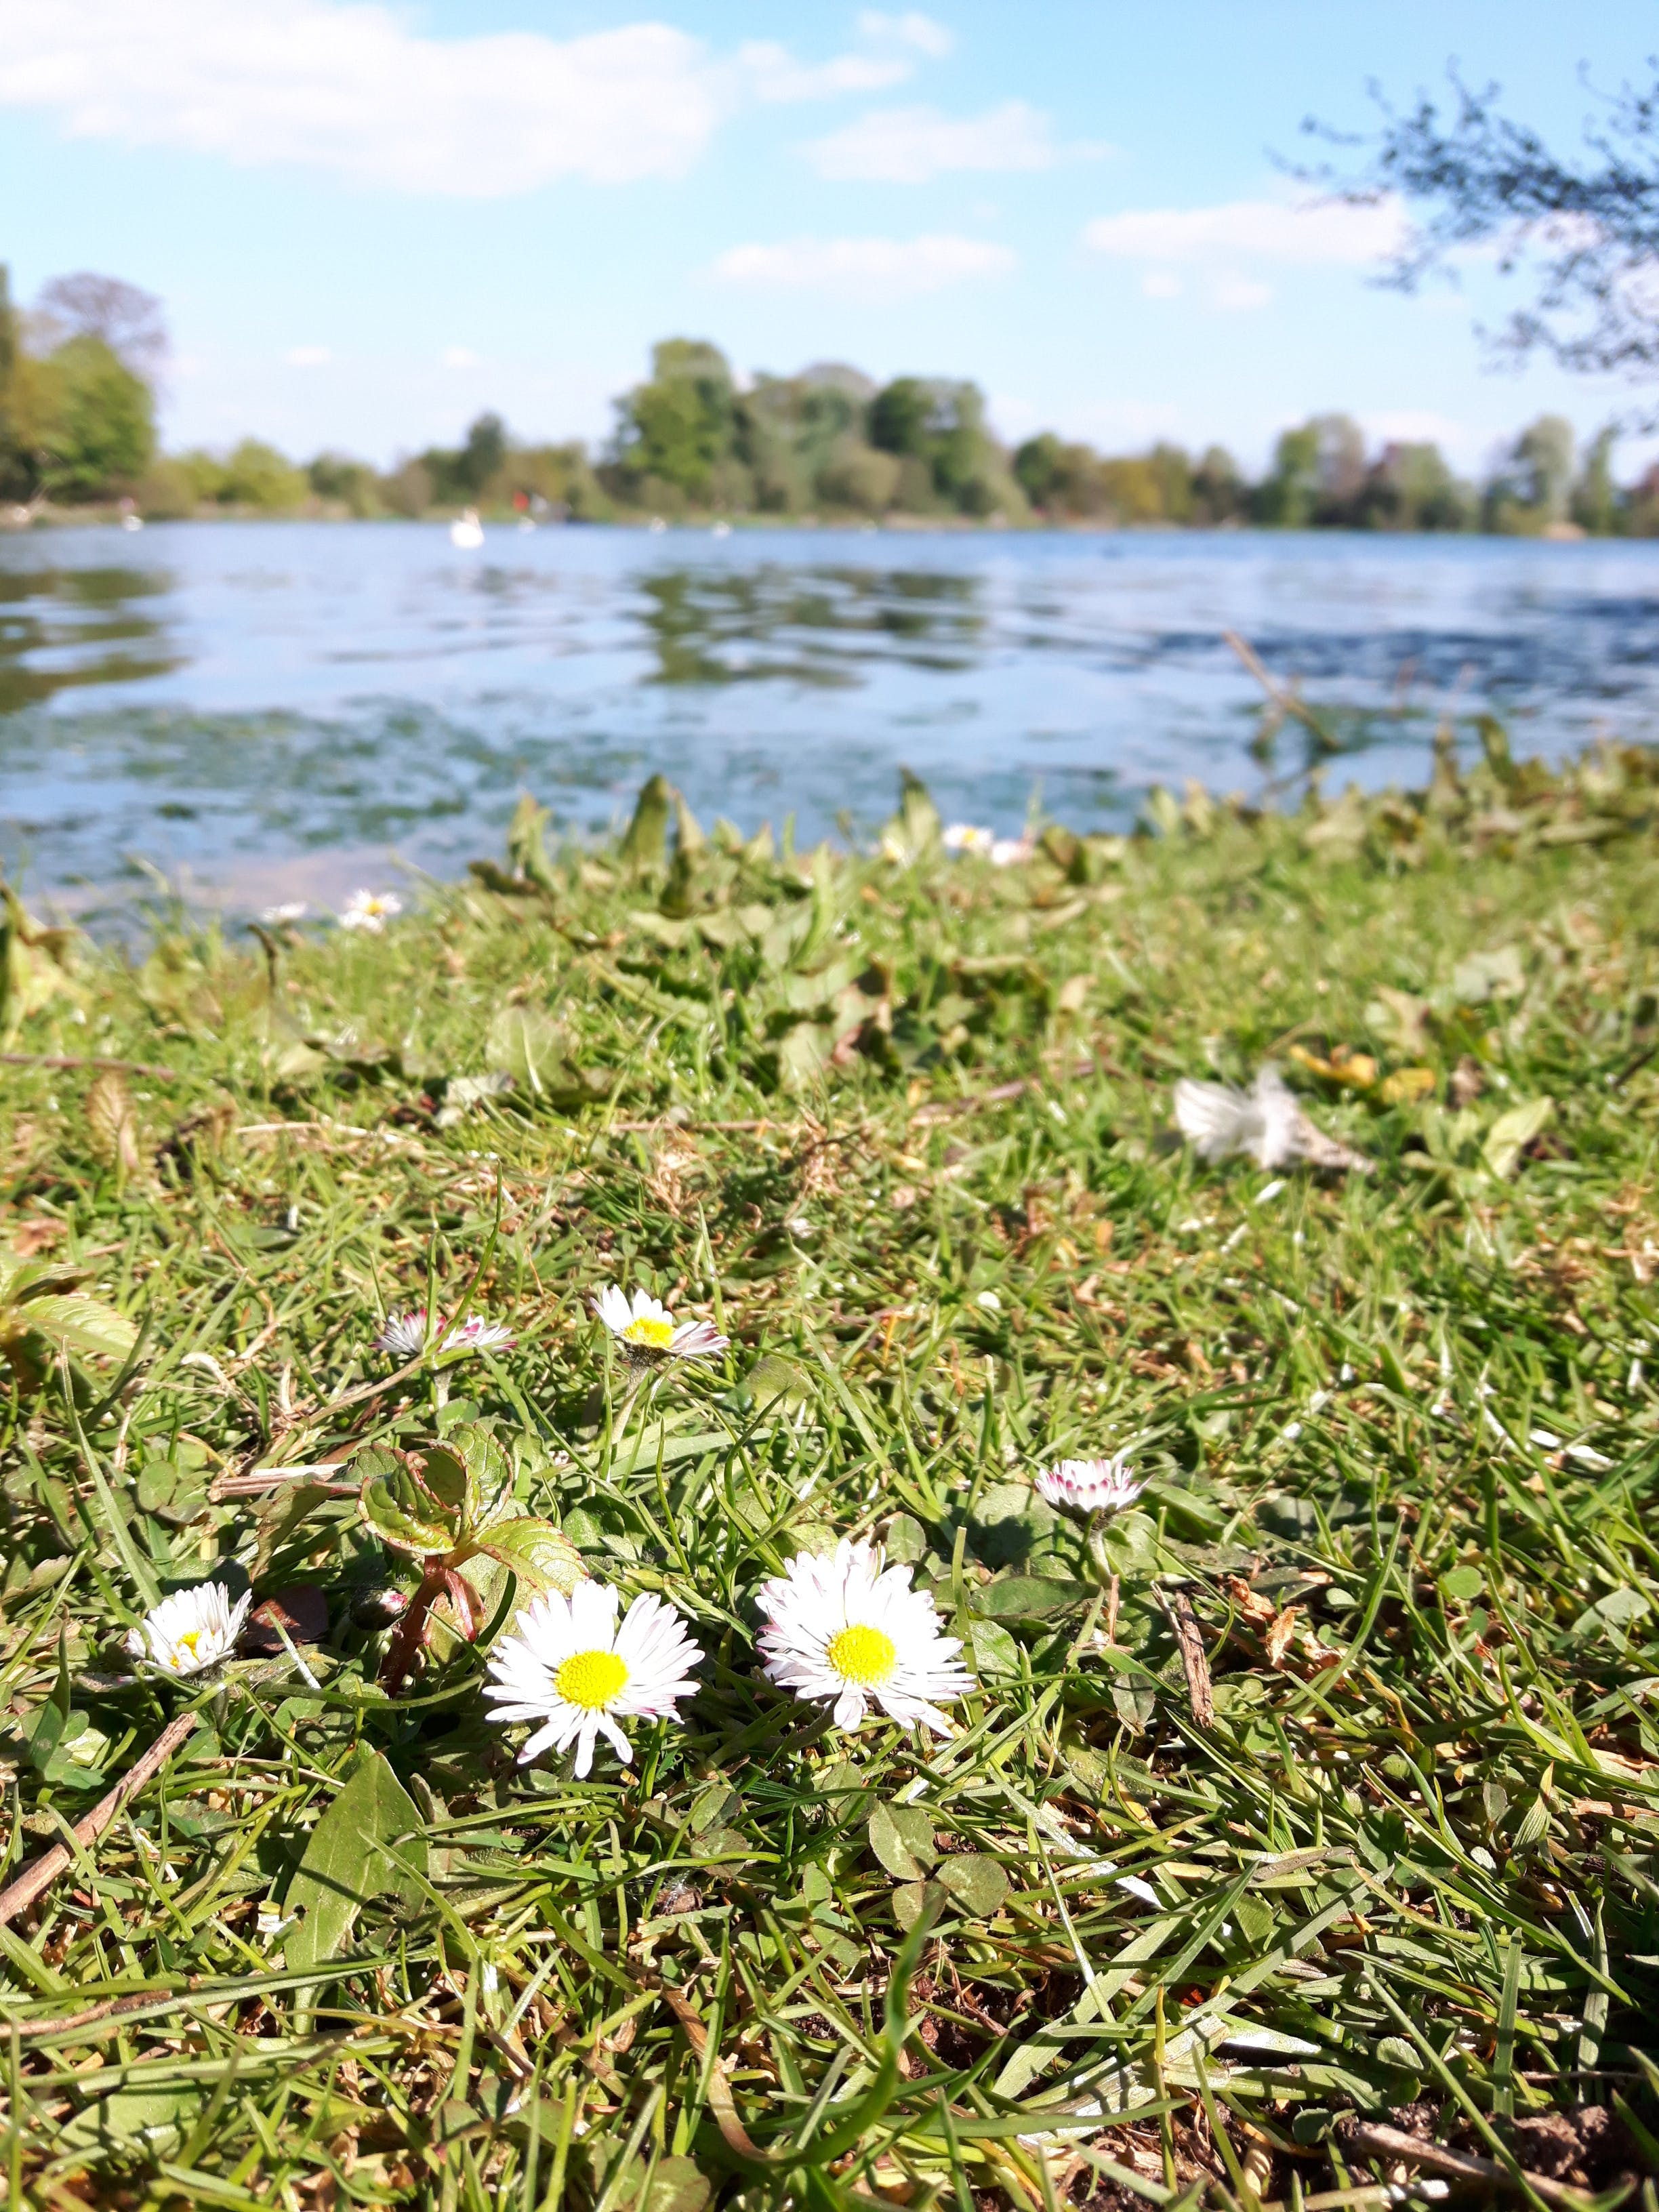 Free stock photo of blade of grass, daises, grass field, lake